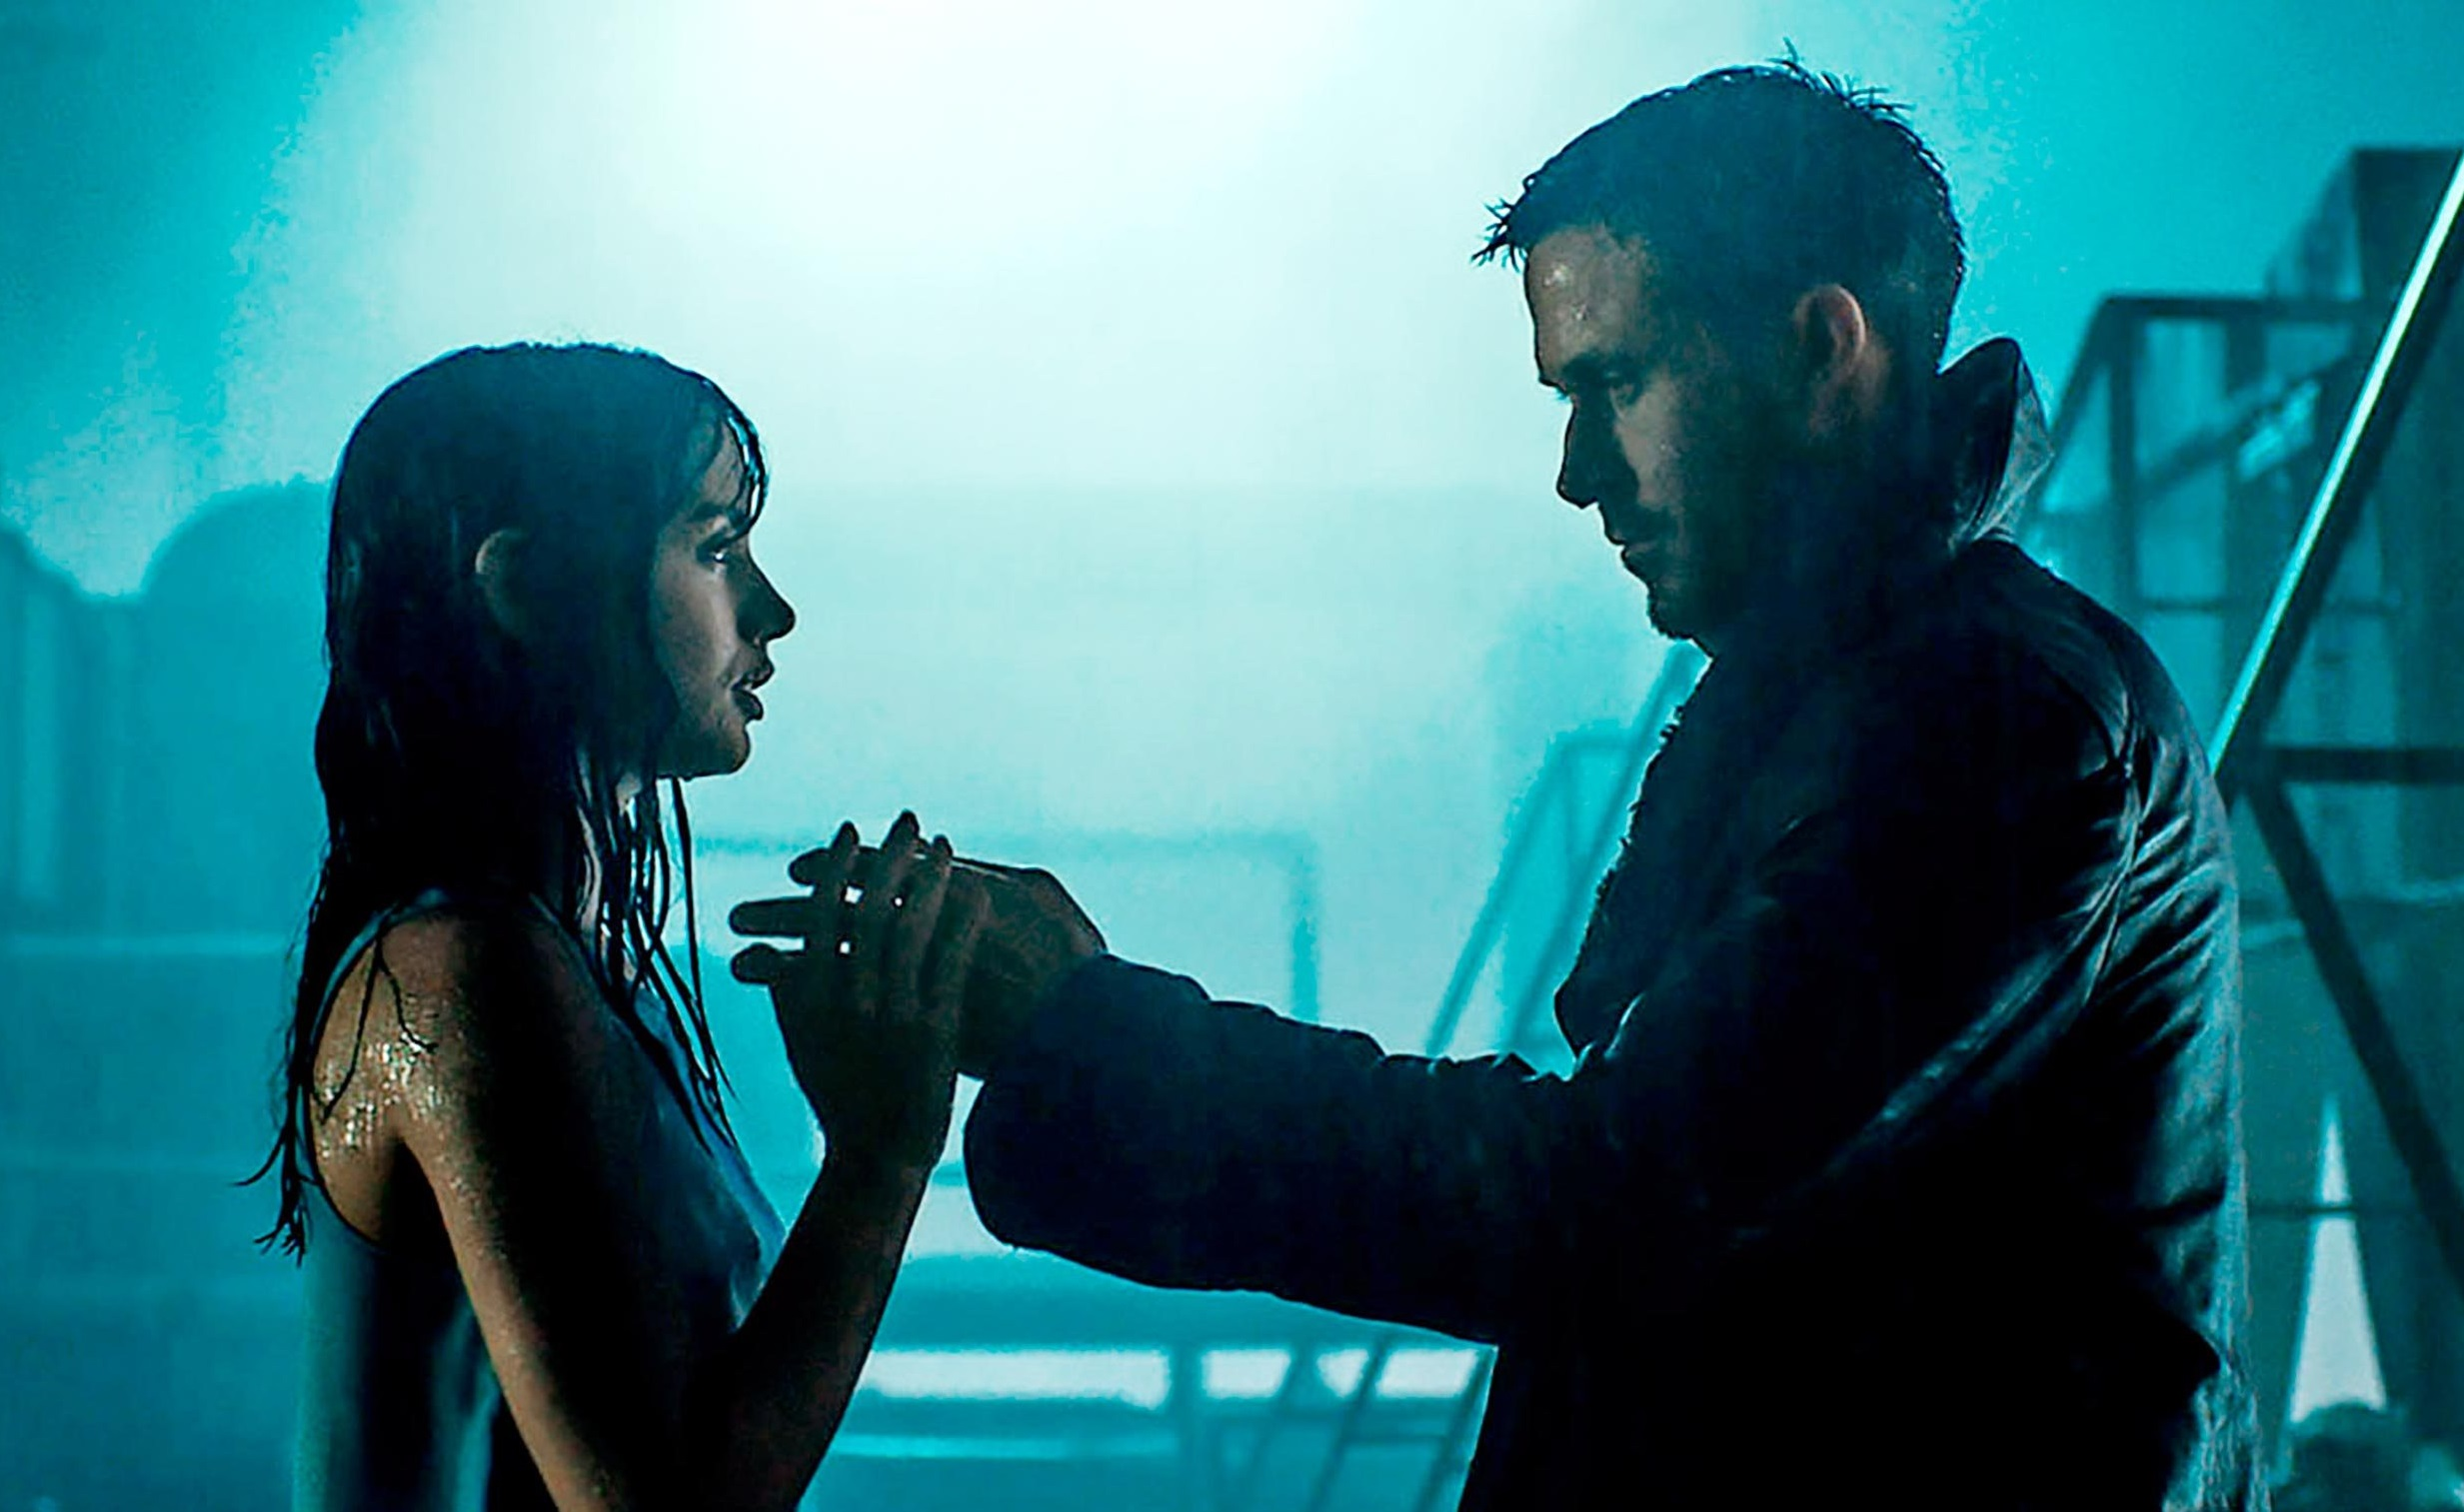 Ryan Gosling, blade runner 2049, lucas mirabella movie review